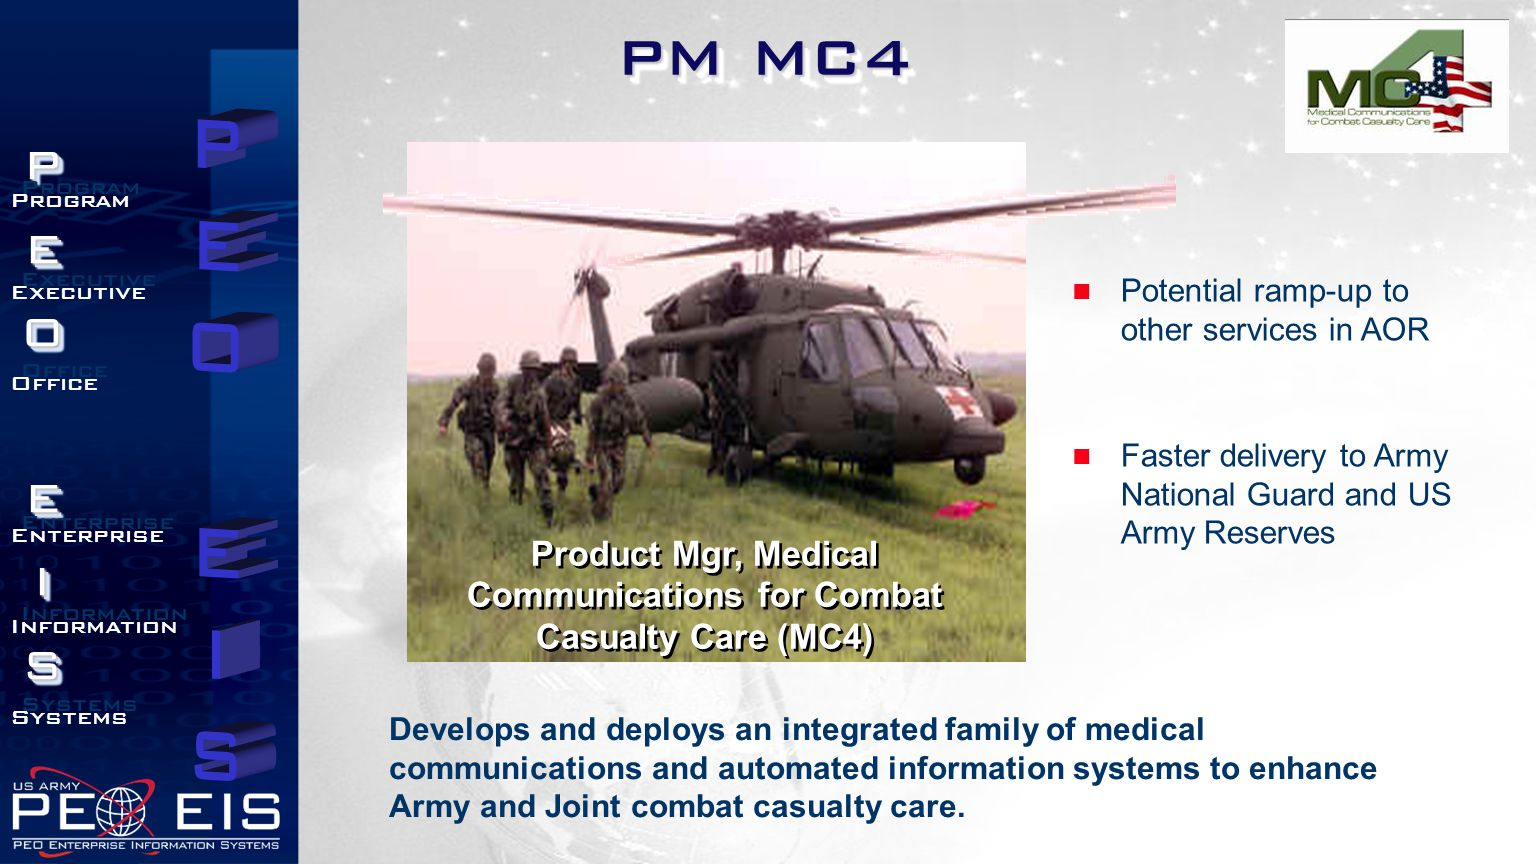 Product Mgr, Medical Communications for Combat Casualty Care (MC4)